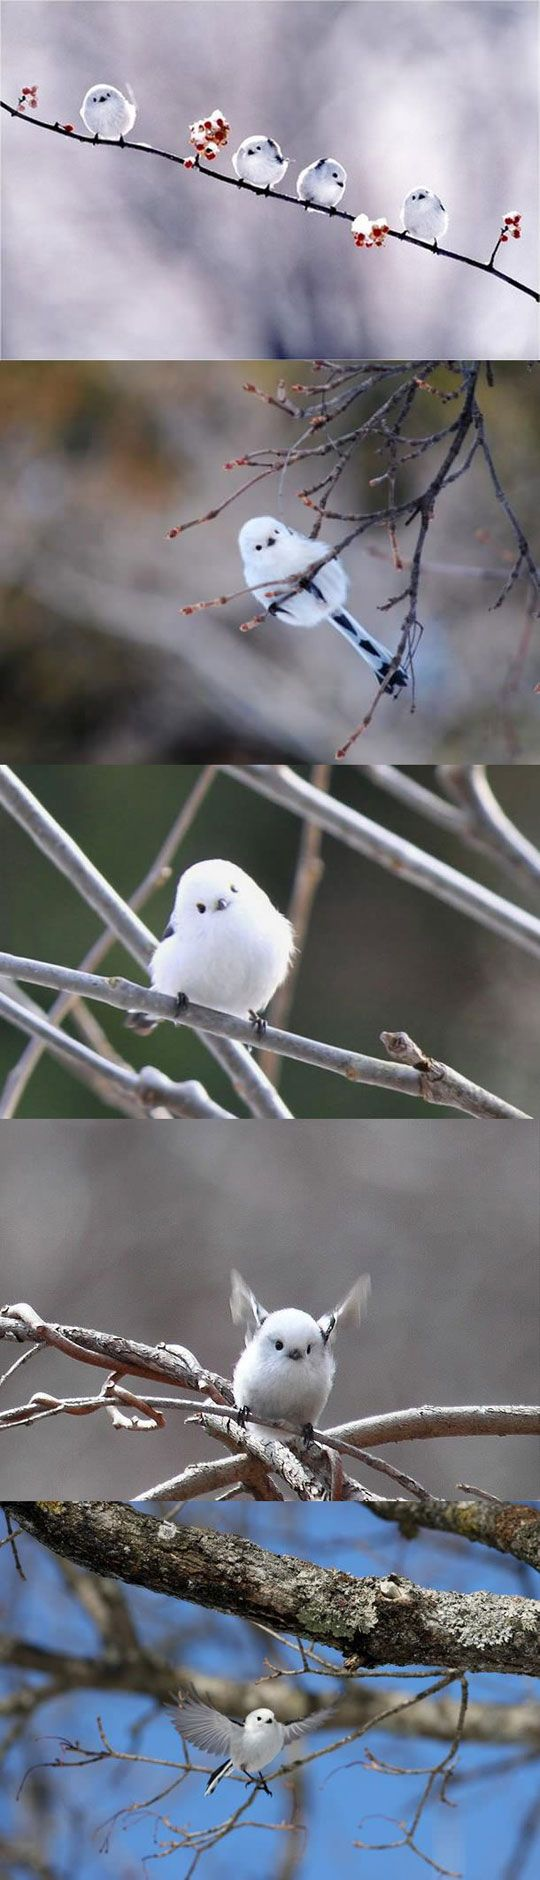 little white wren